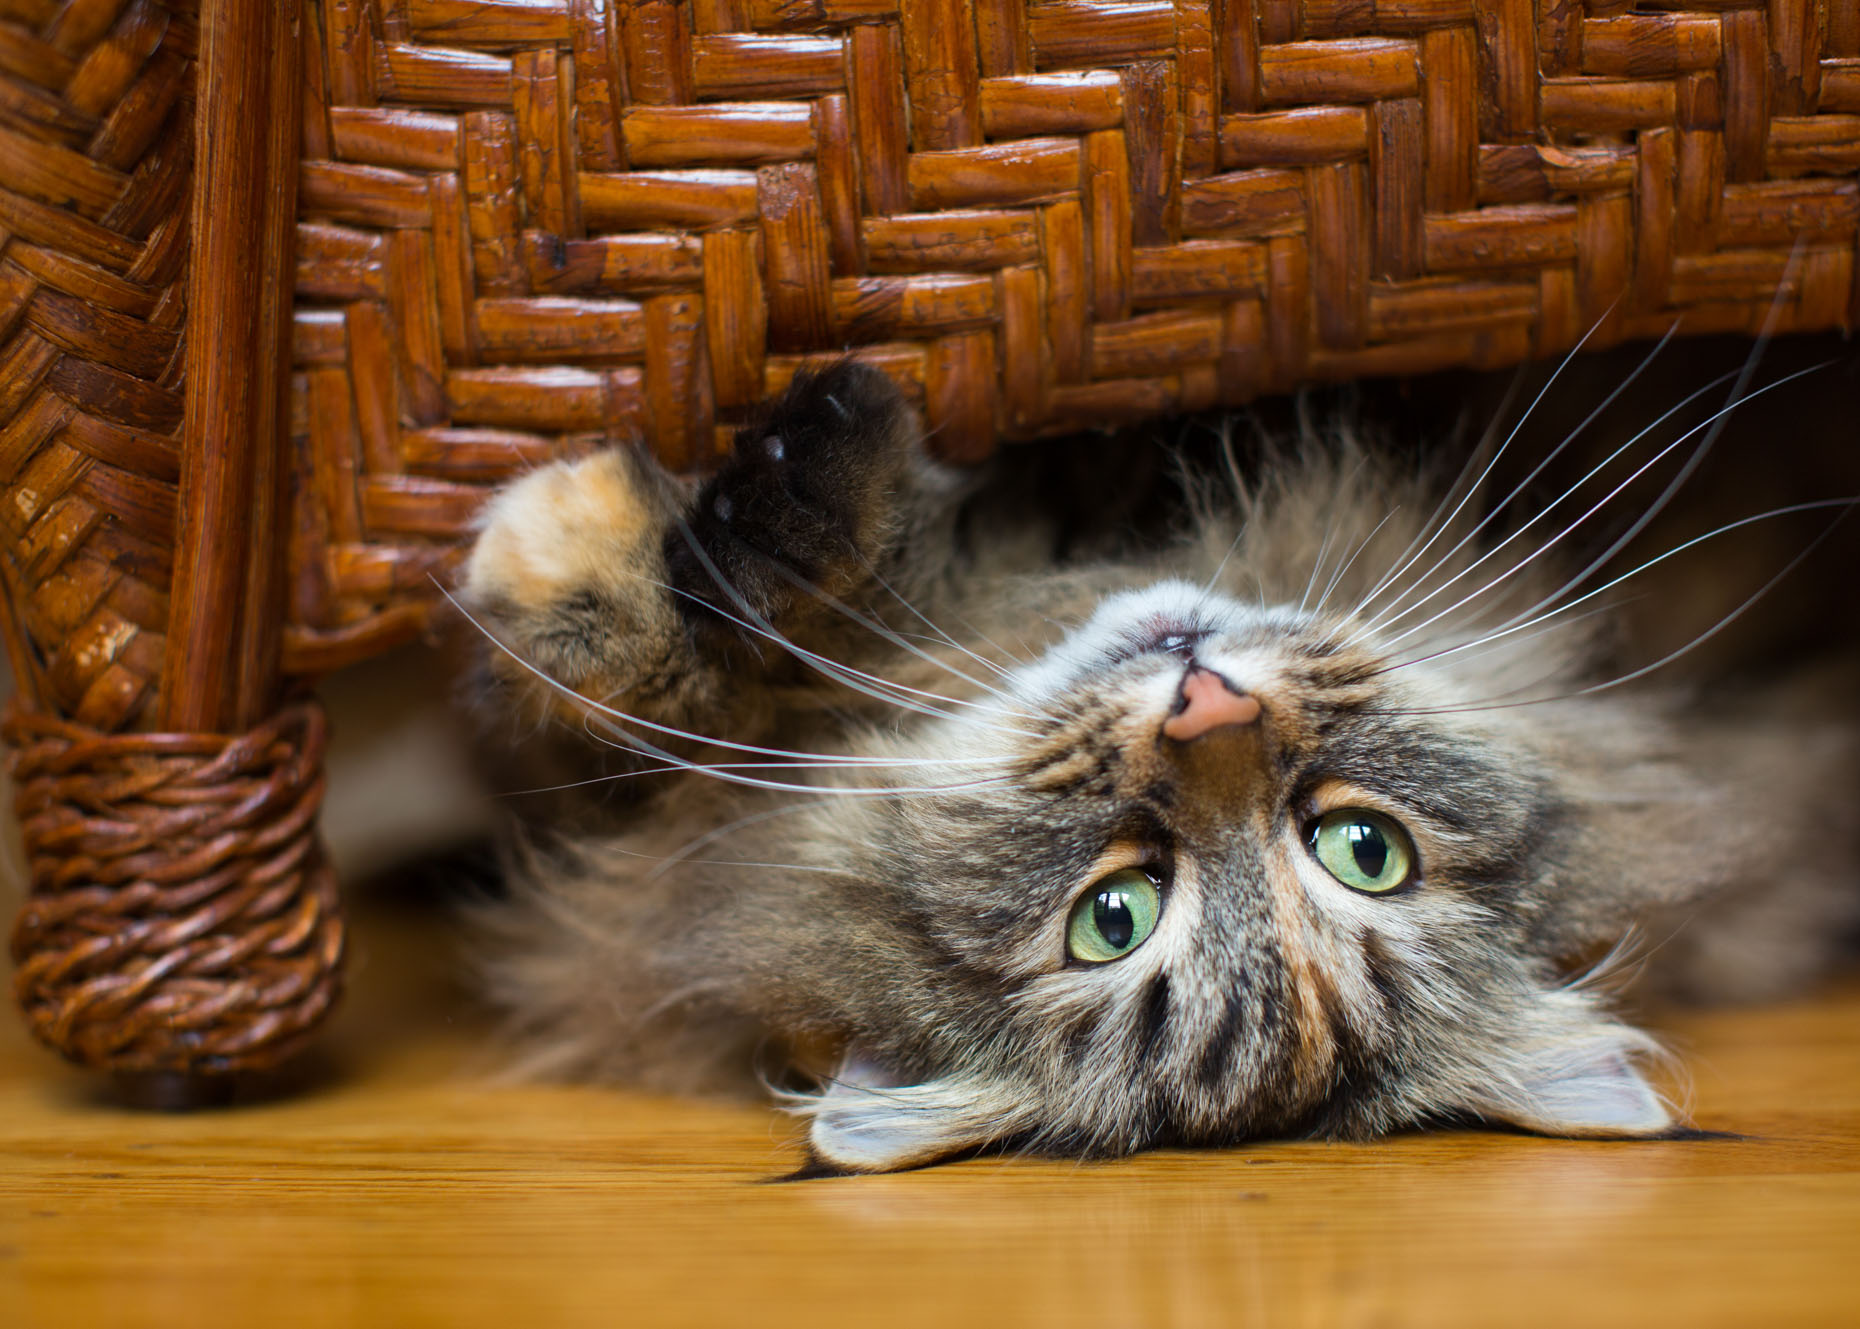 Cat and Pet Photography | Cat Under a Chair by Mark Rogers